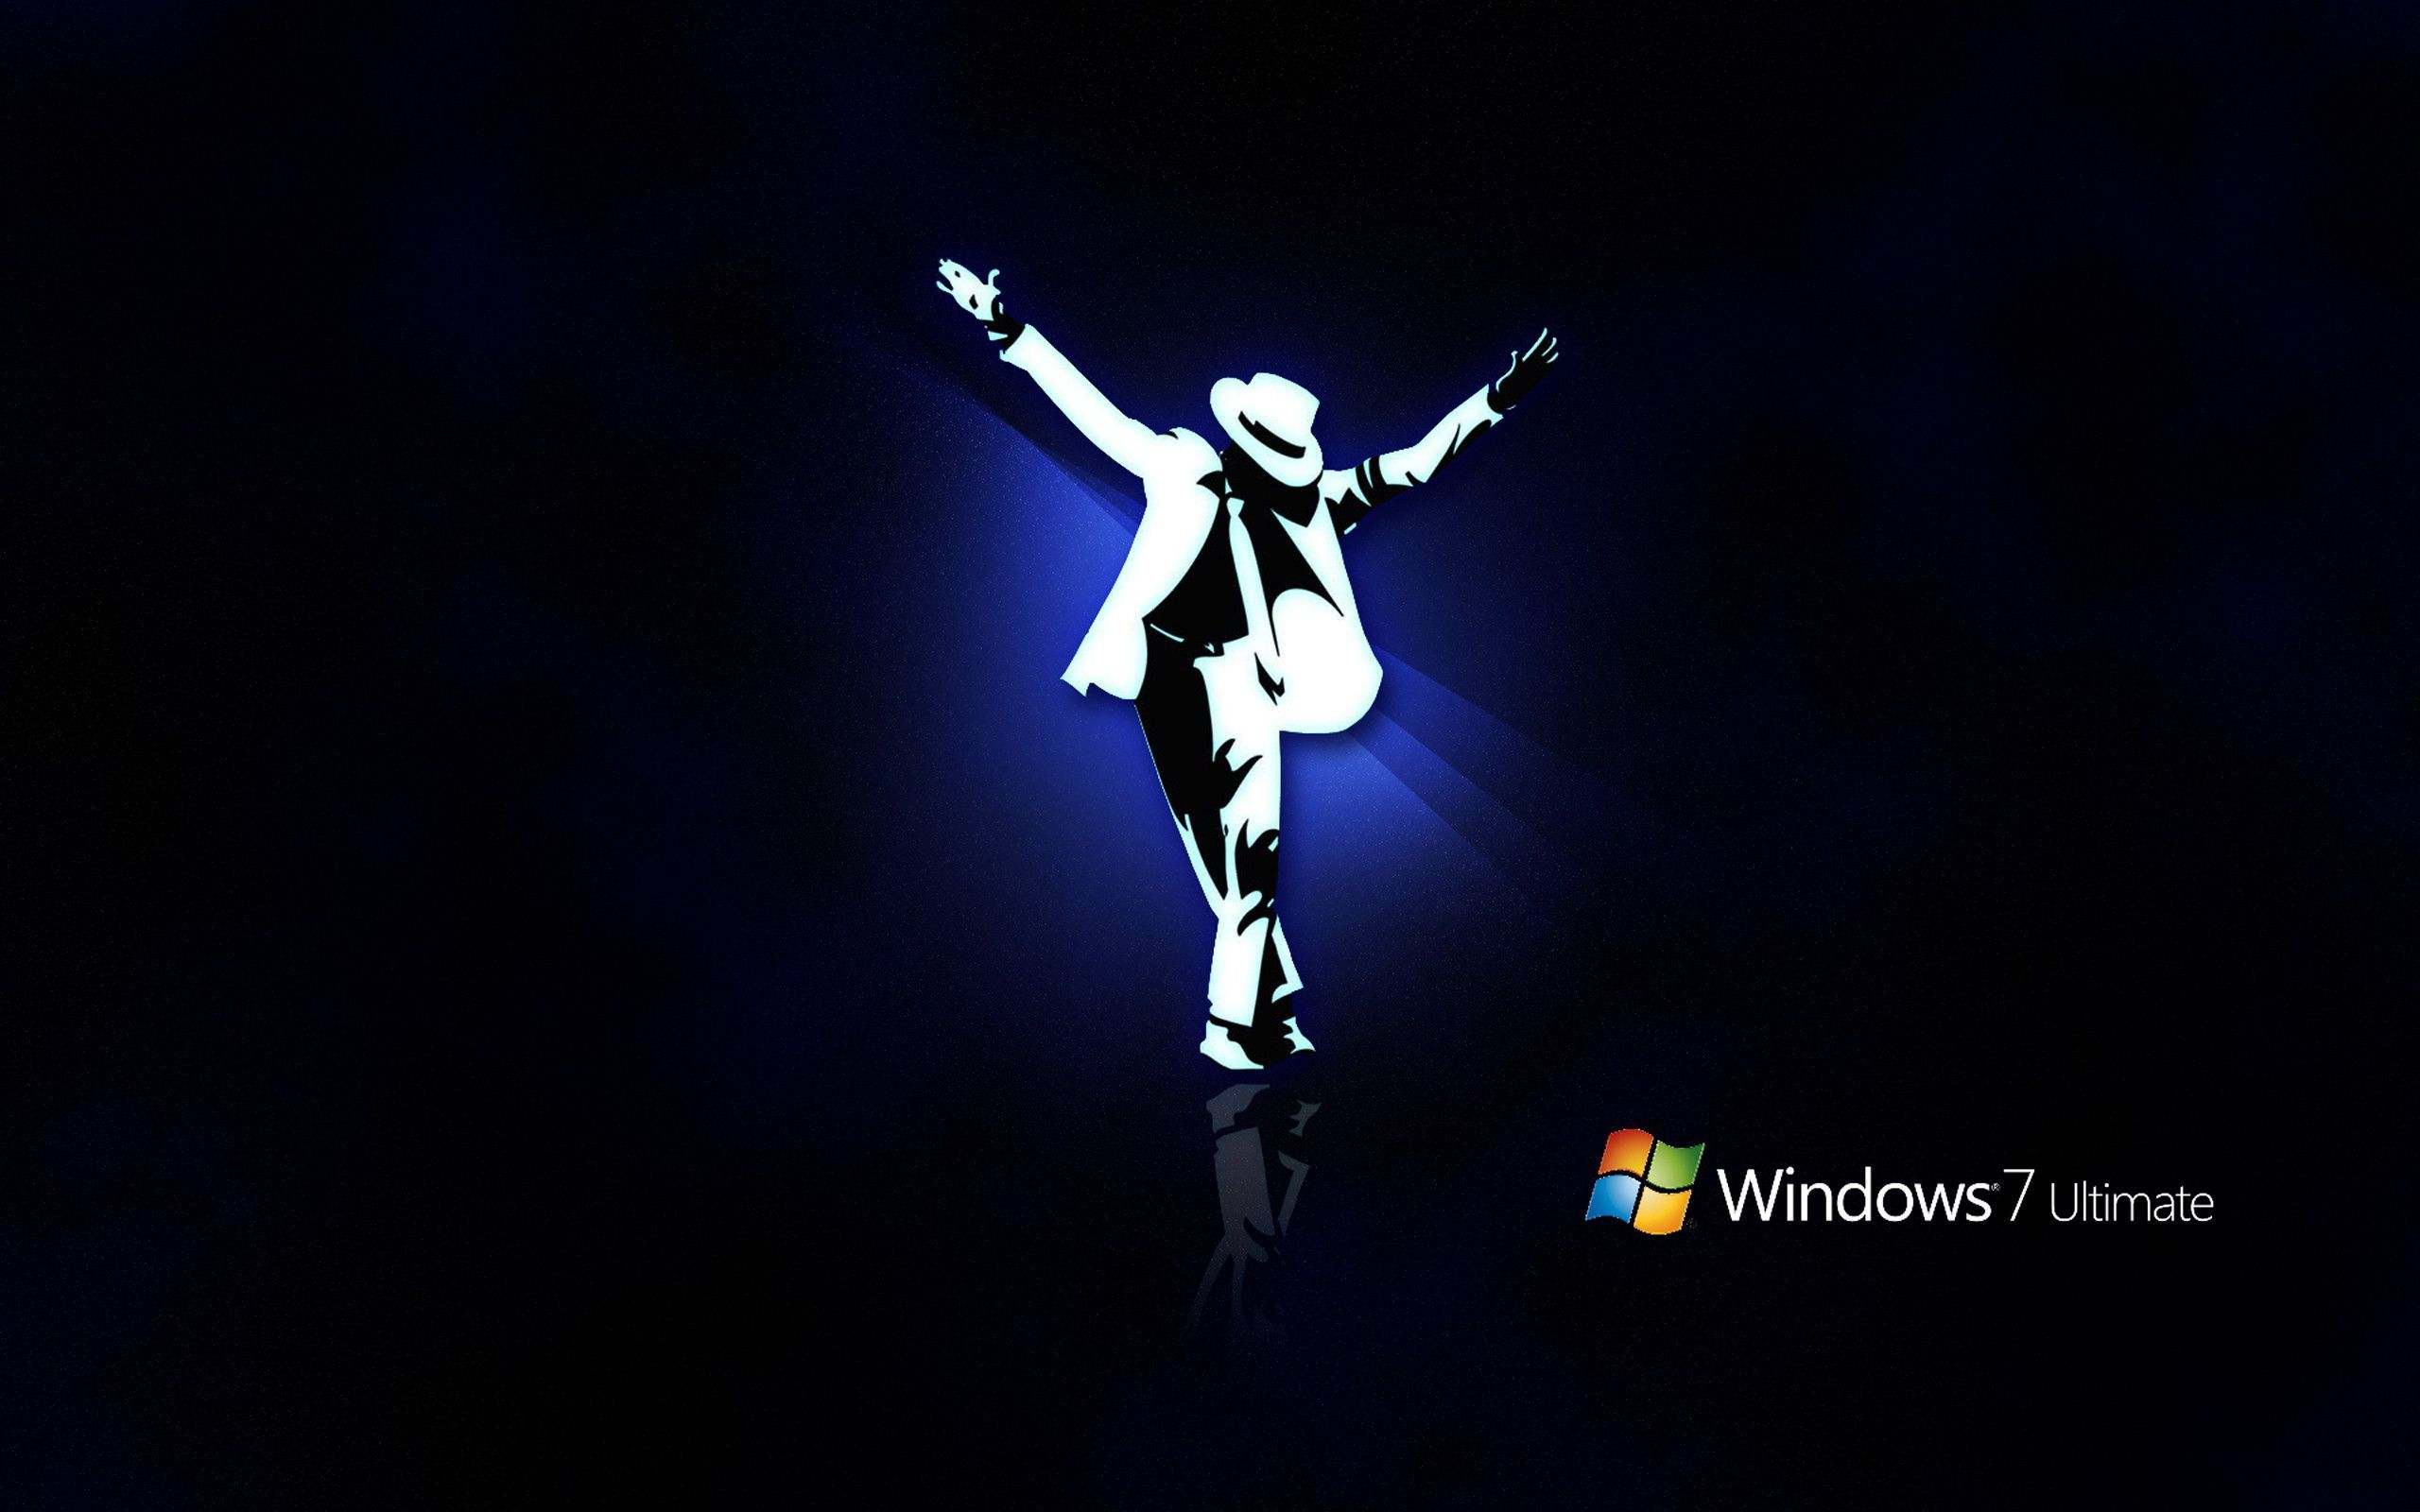 Download Wallpapers For Windows 7 Ultimate